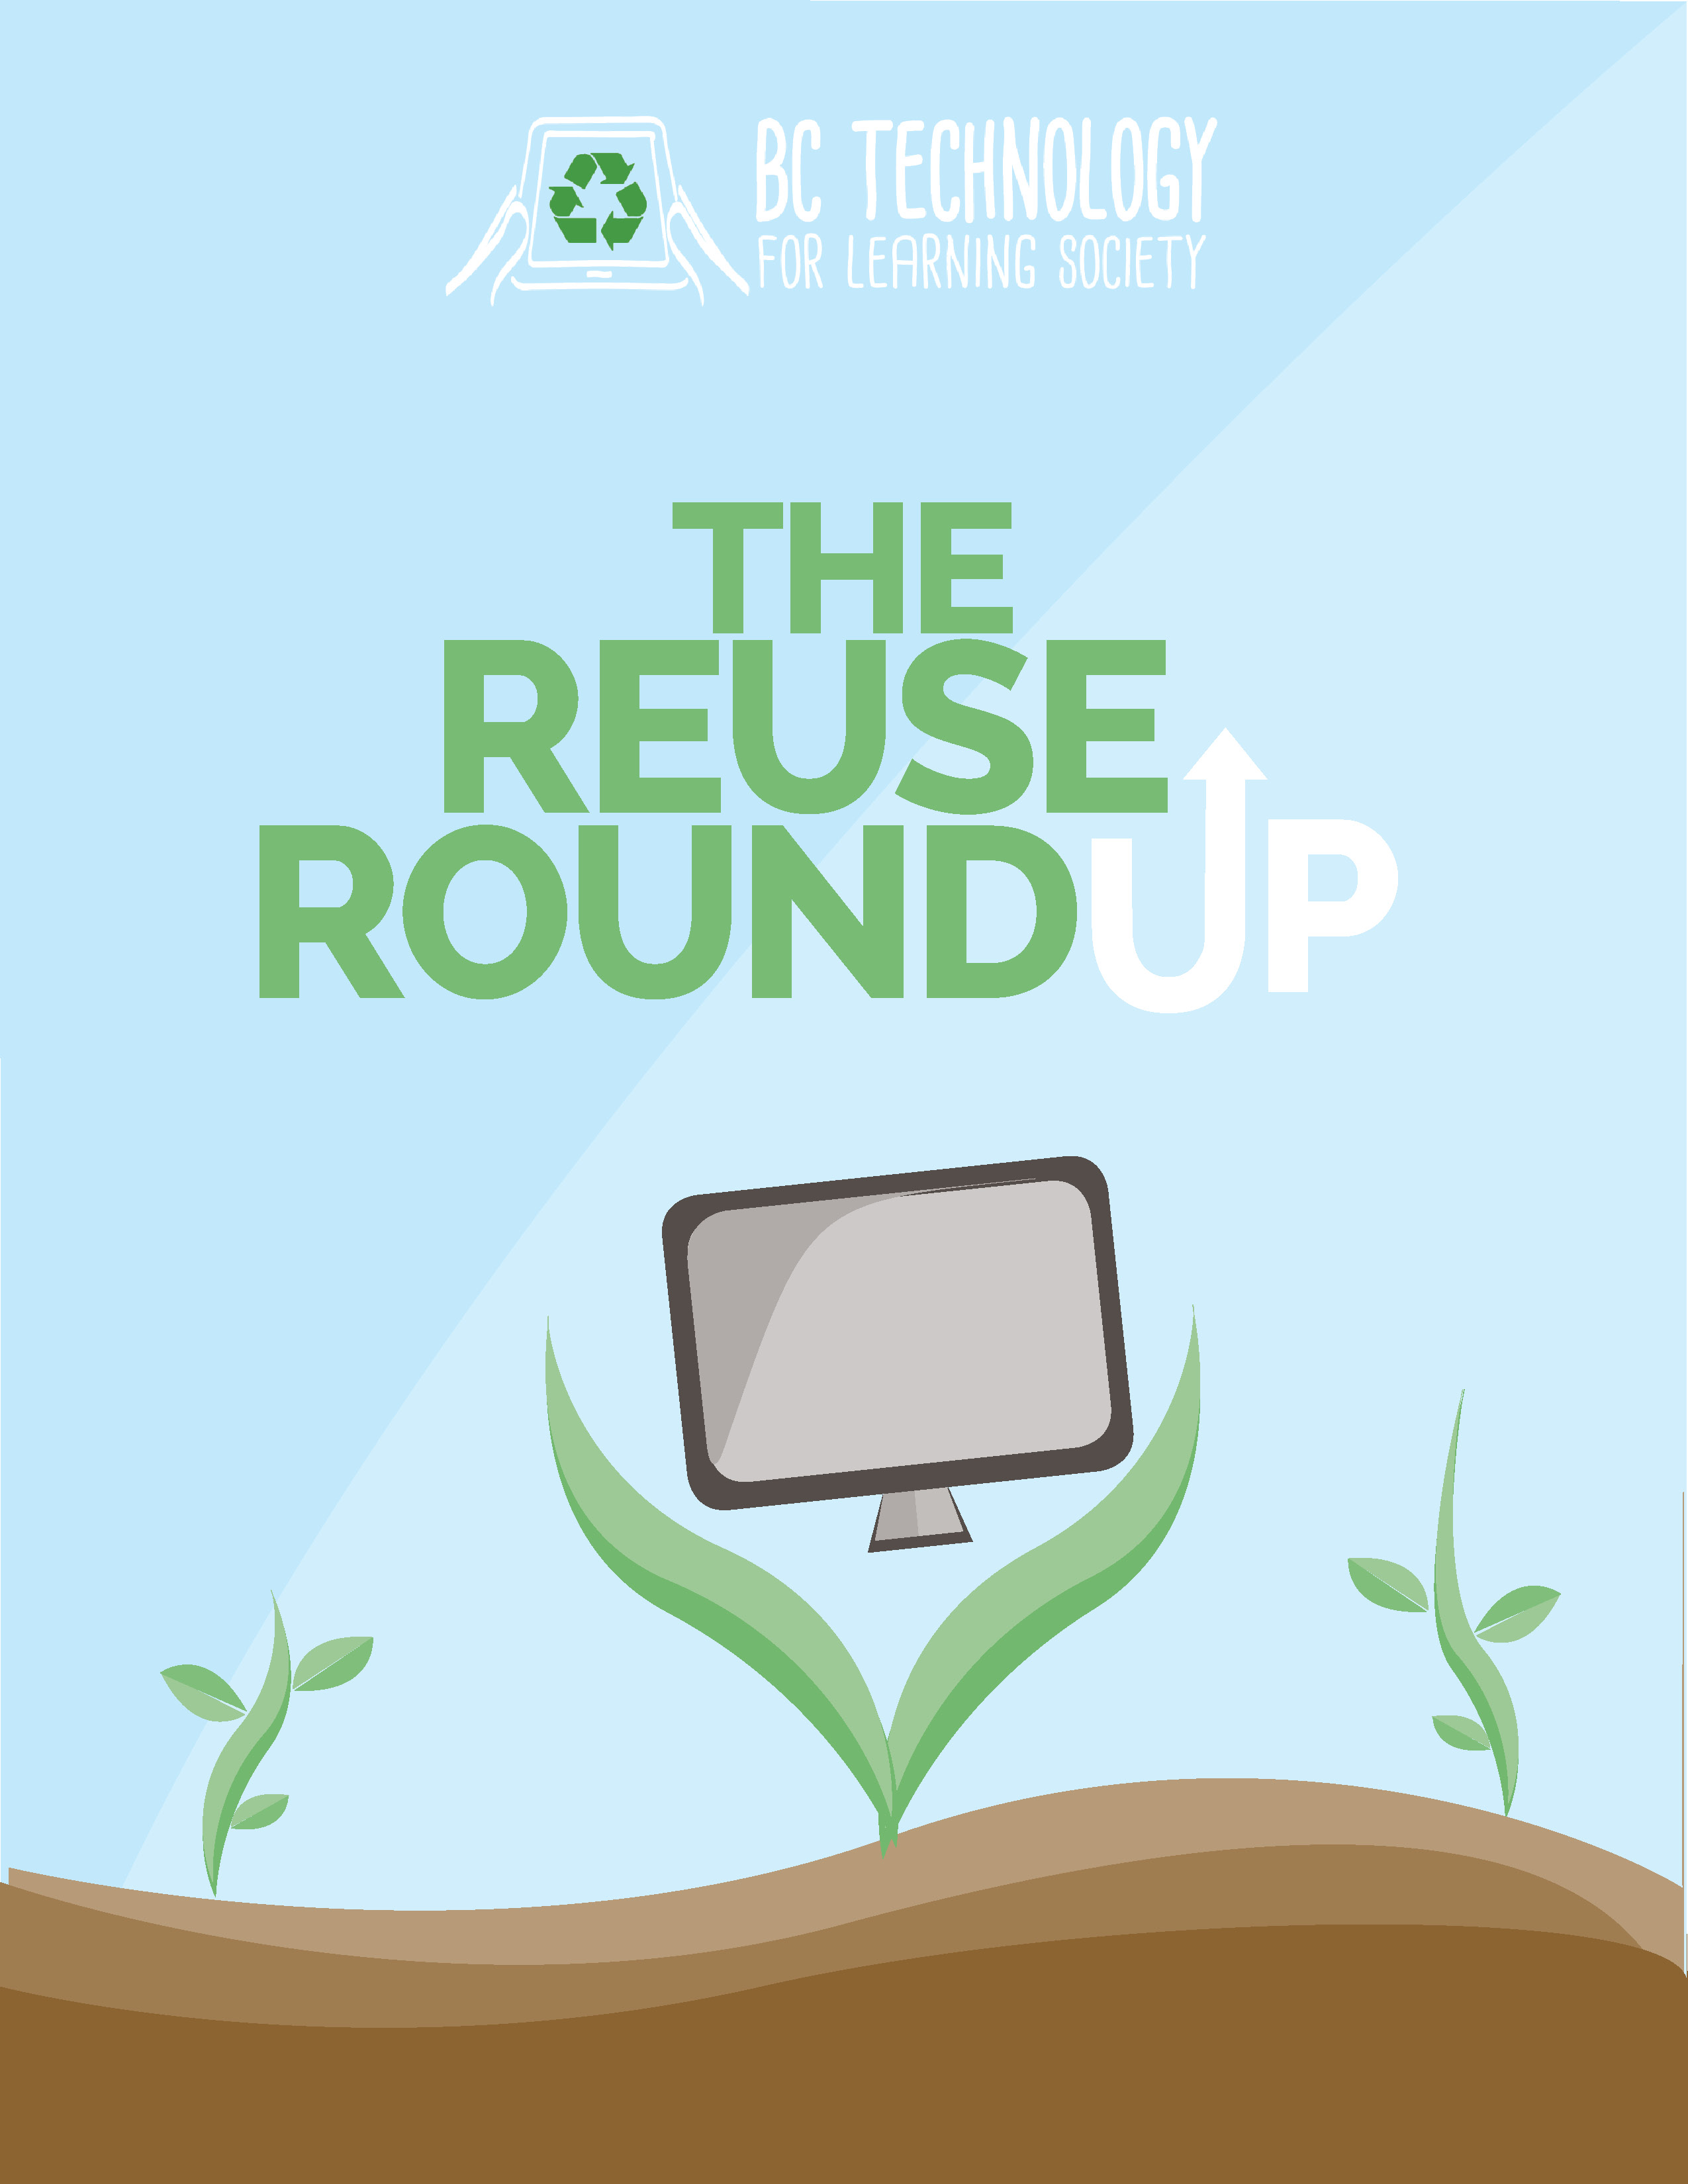 BC Technology for Learning Society is hosting its first ever Reuse Round Up